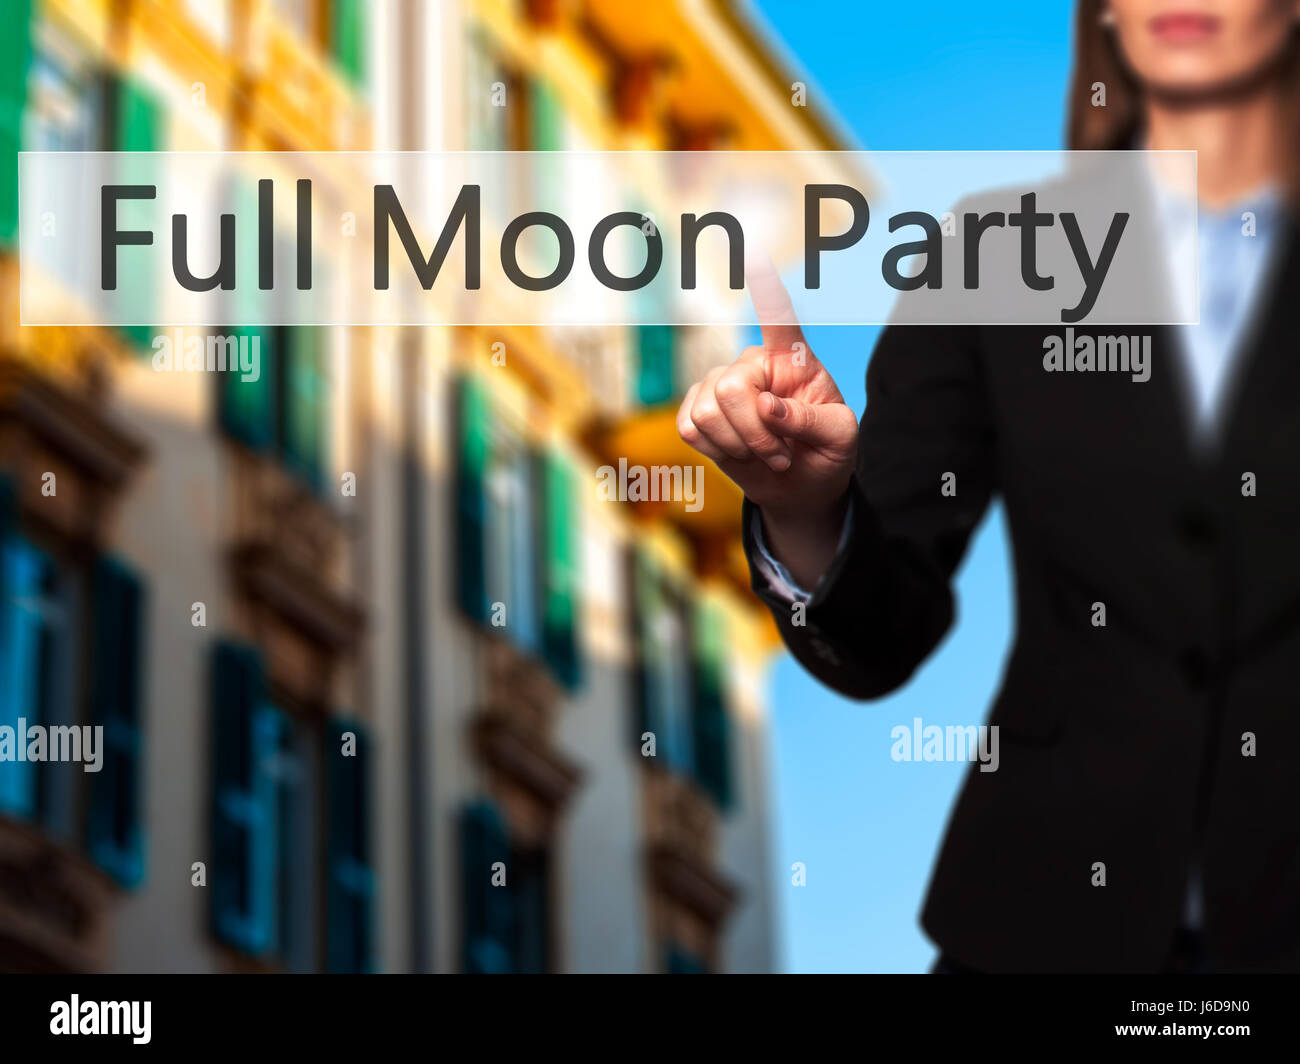 Full Moon Party - Businesswoman hand pressing button on touch screen interface. Business, technology, internet concept. - Stock Image